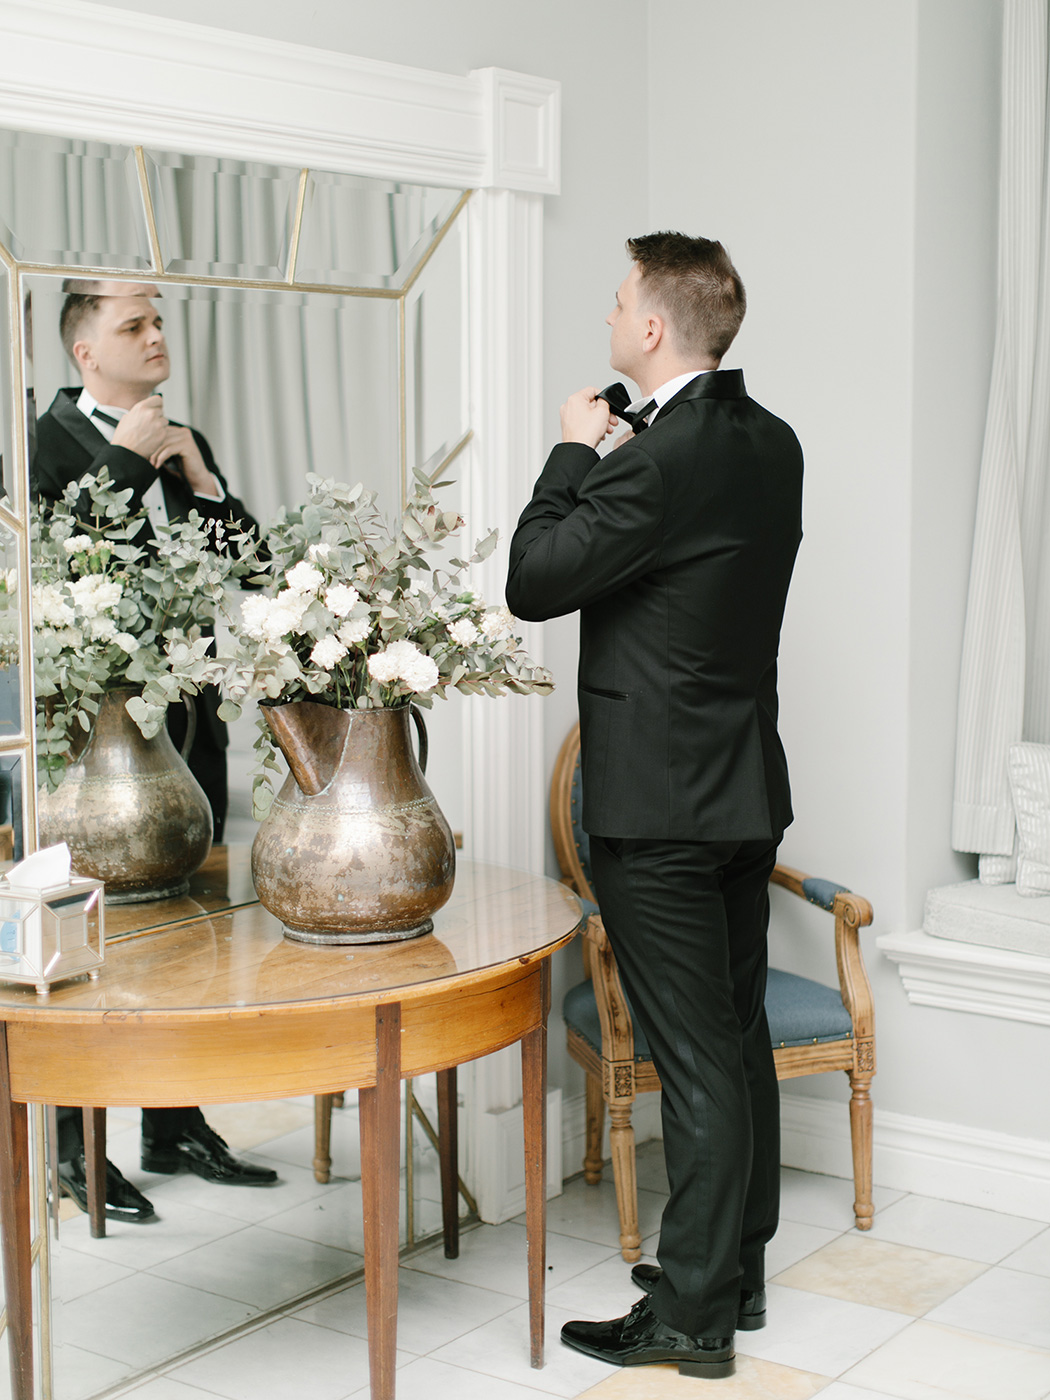 Groom Getting Ready | Rensche Mari Photography